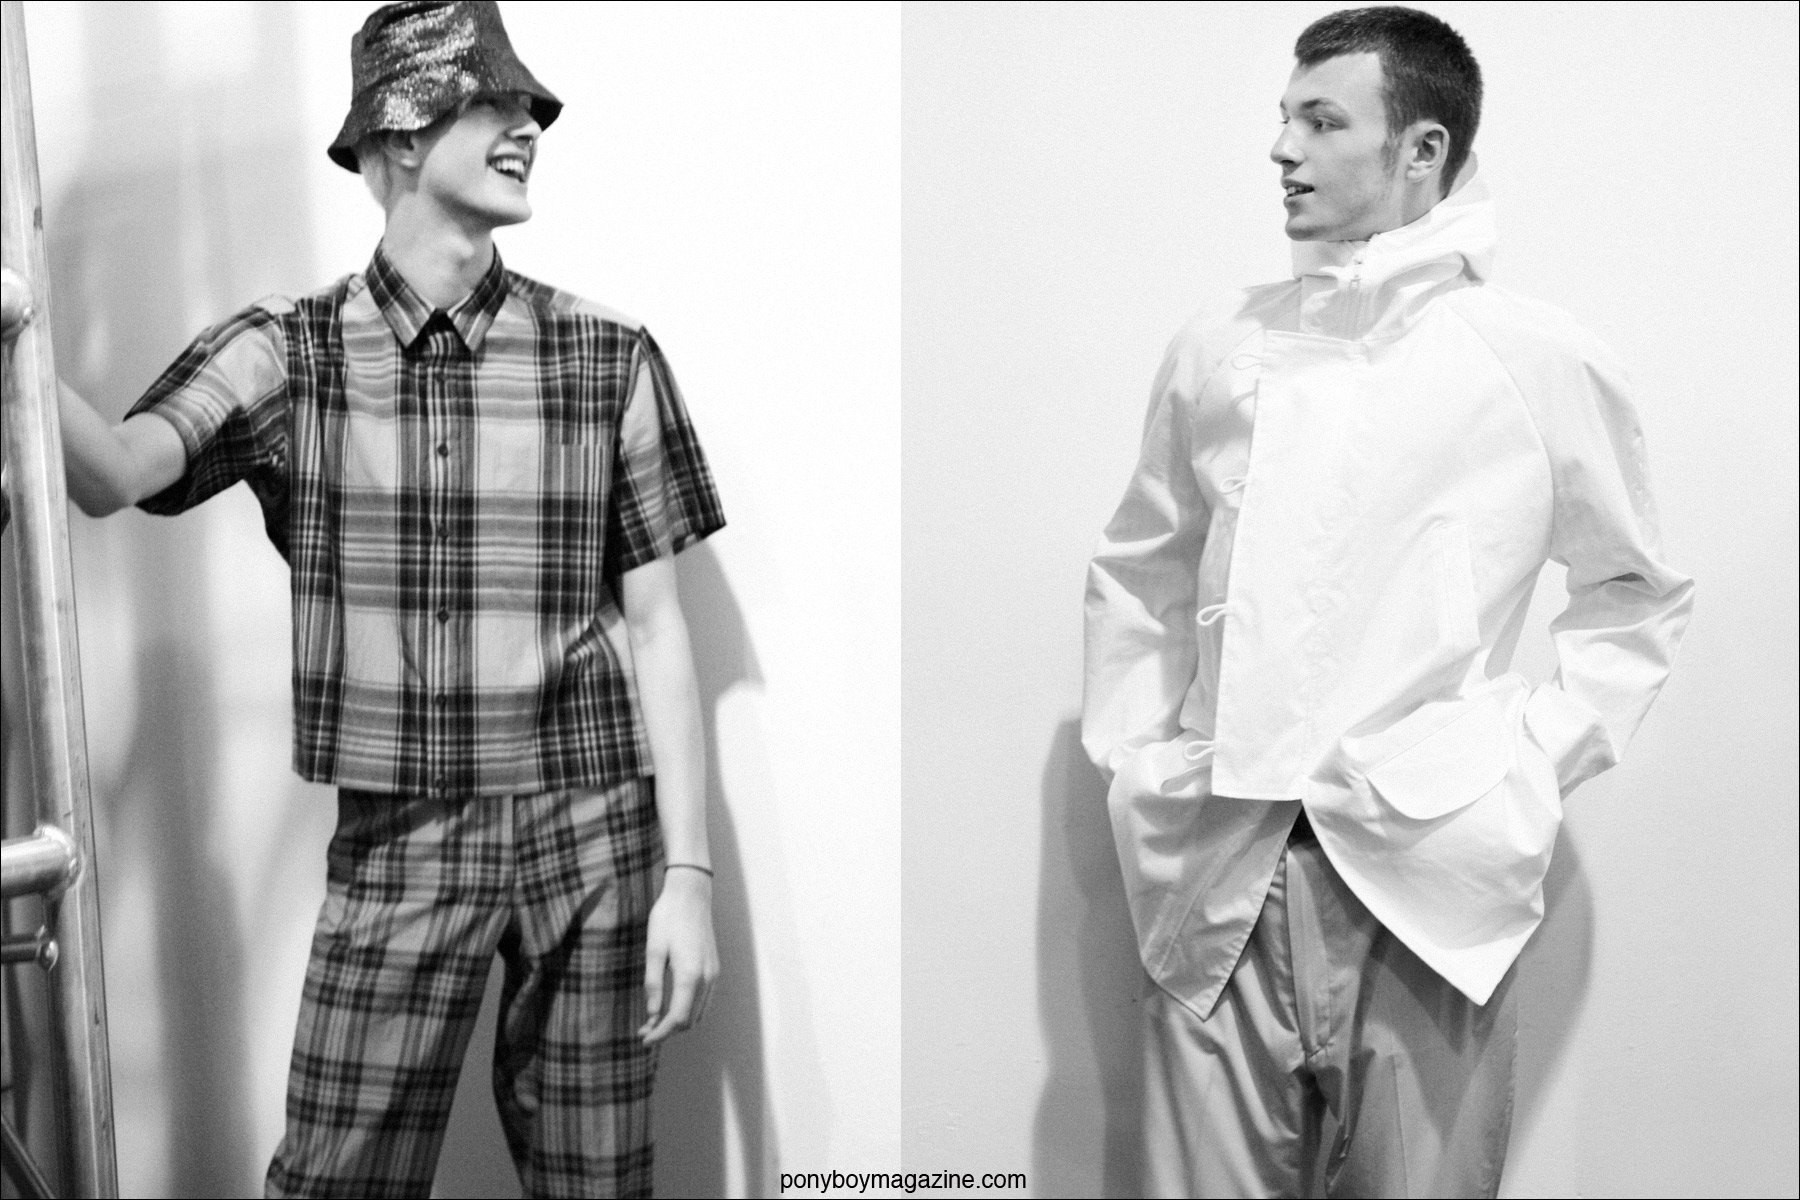 Model Benjamin Jarvis wears a plaid ensemble by Duckie Brown for Sprin/Summer 2015. Photographs by Alexander Thompson for Ponyboy Magazine.